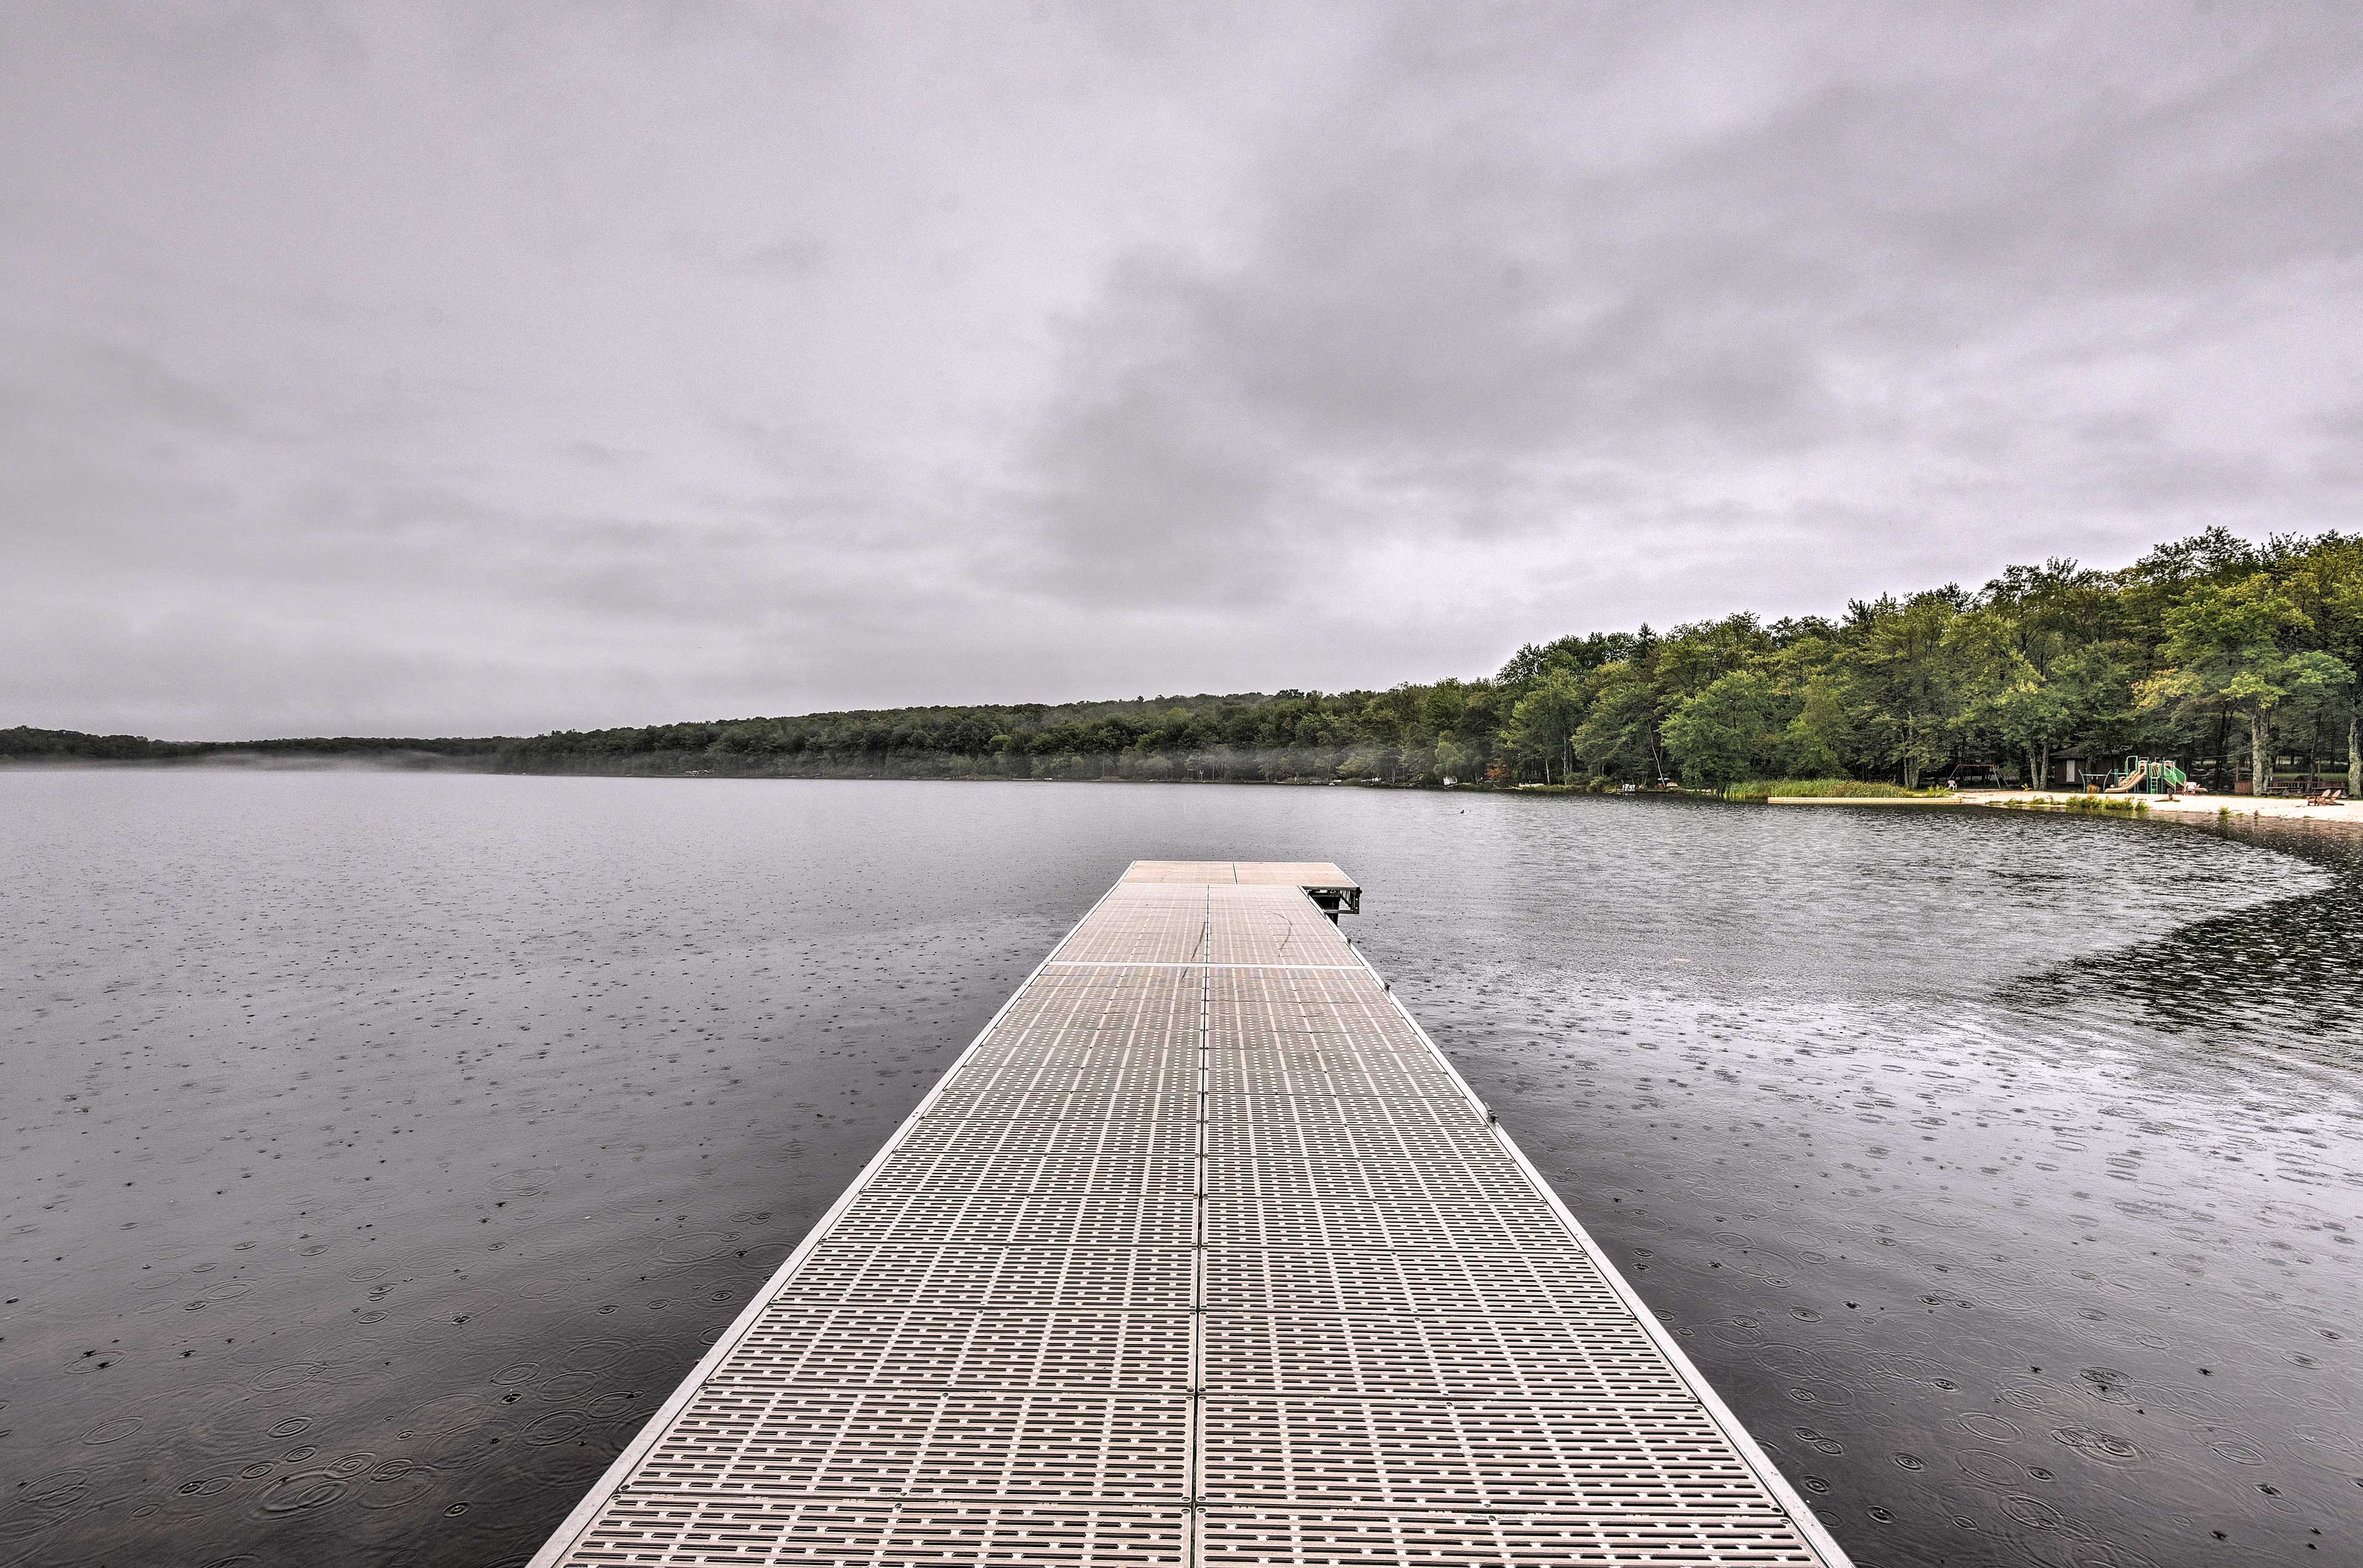 Bring the boat along for a day on the no-wake lake!